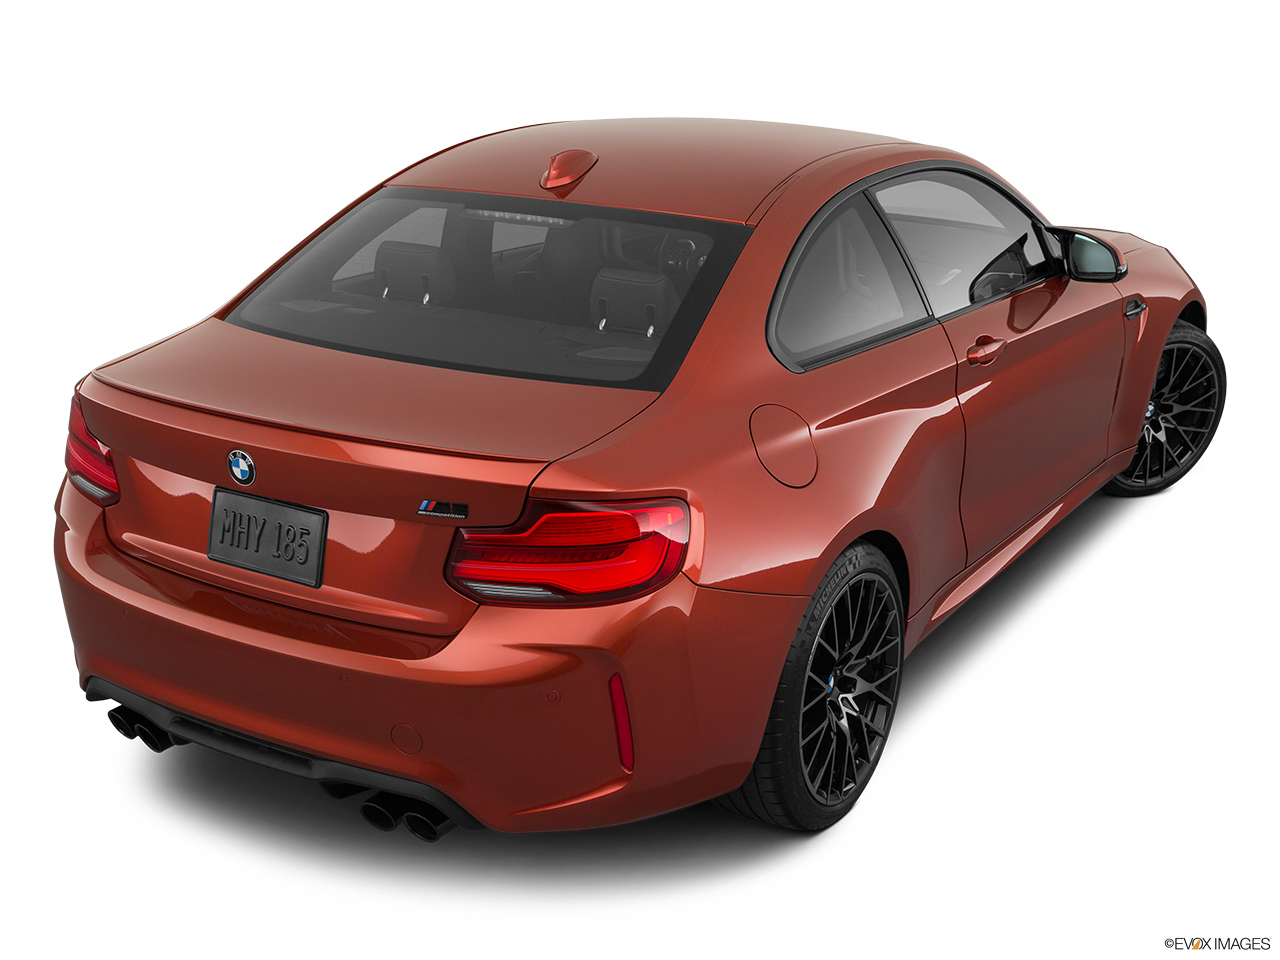 2020 BMW M2 Competition Rear 3/4 angle view.